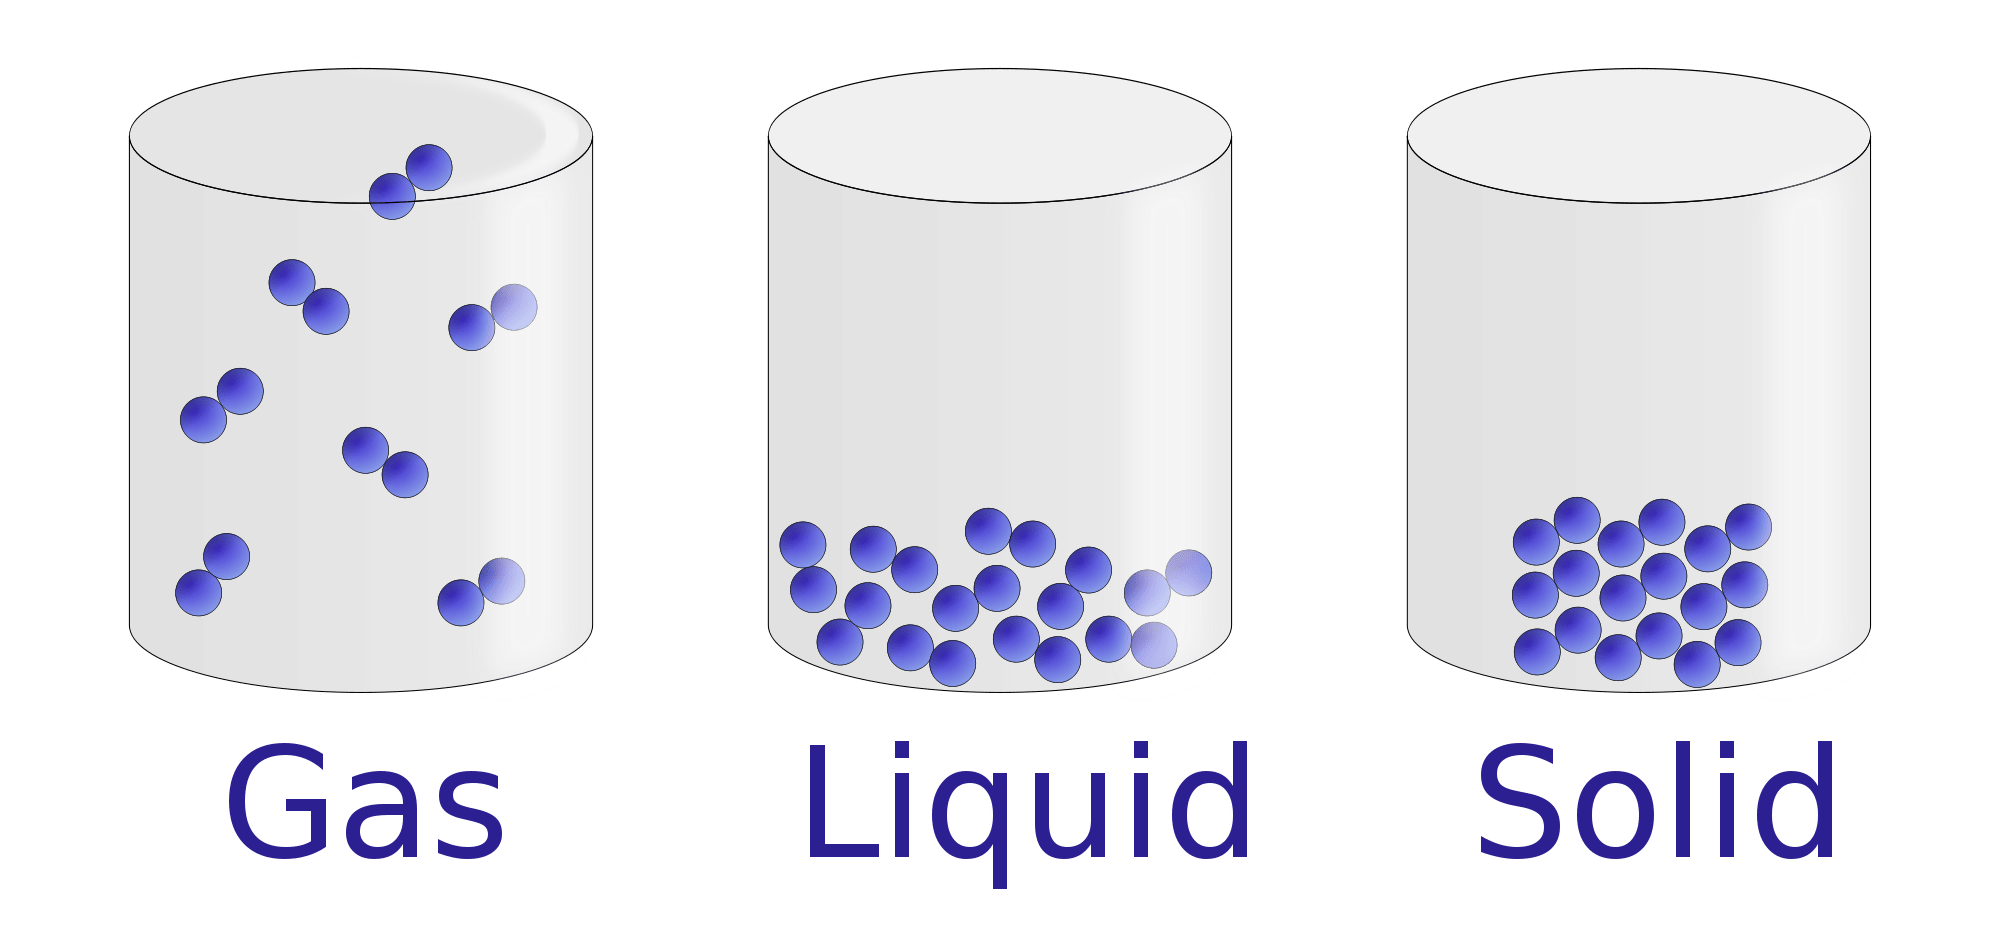 diagram of solid liquid and gas remote starter wiring diagrams properties liquids chemistry visionlearning